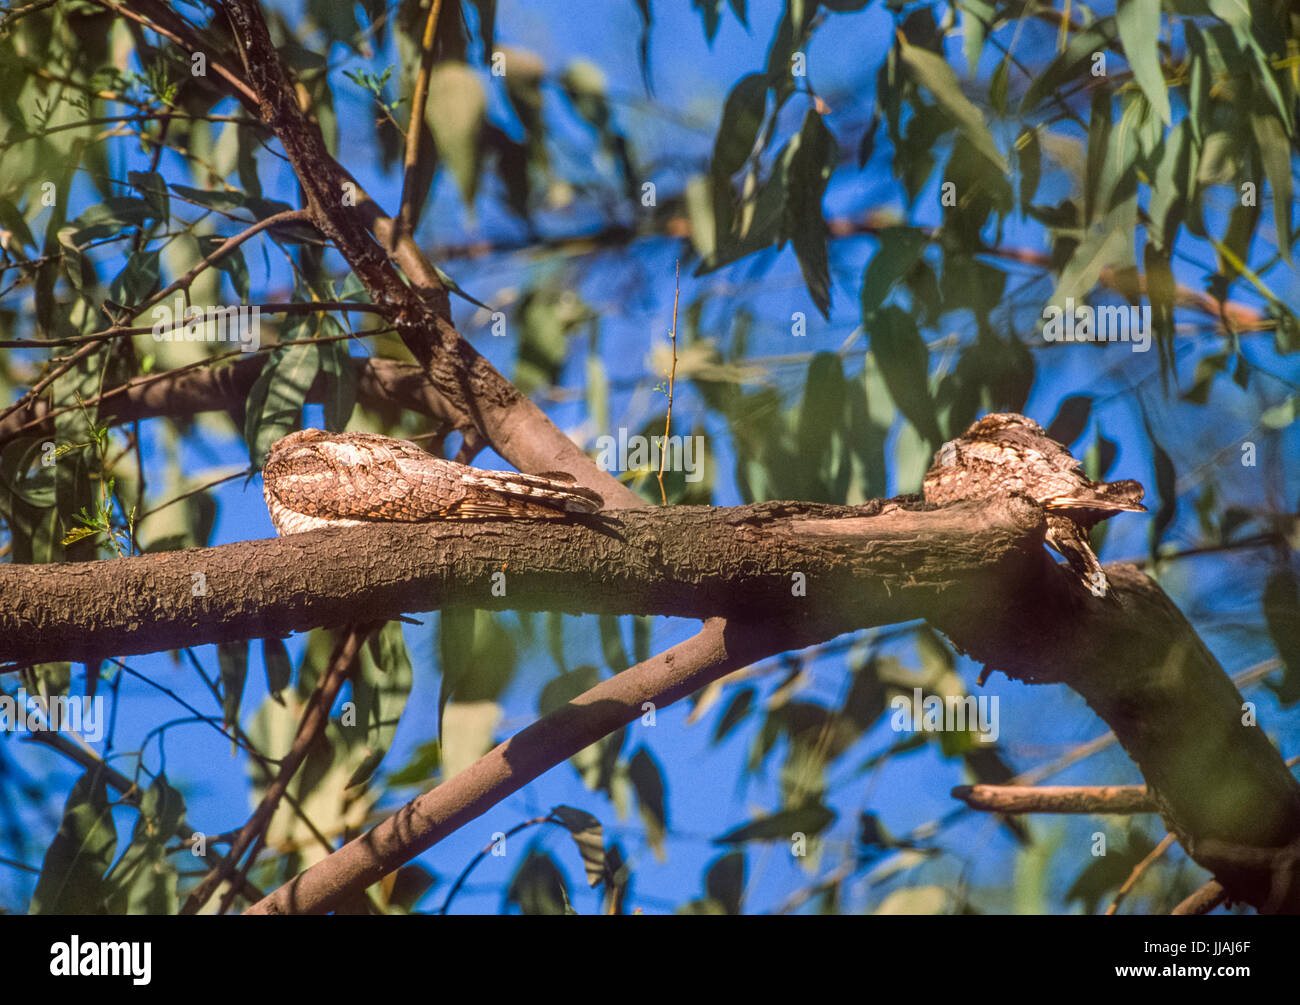 Jungle Nightjar, Caprimulgus indicus, perched on branch and camouflaged, Keoladeo Ghana National Park, Bharatpur, Stock Photo